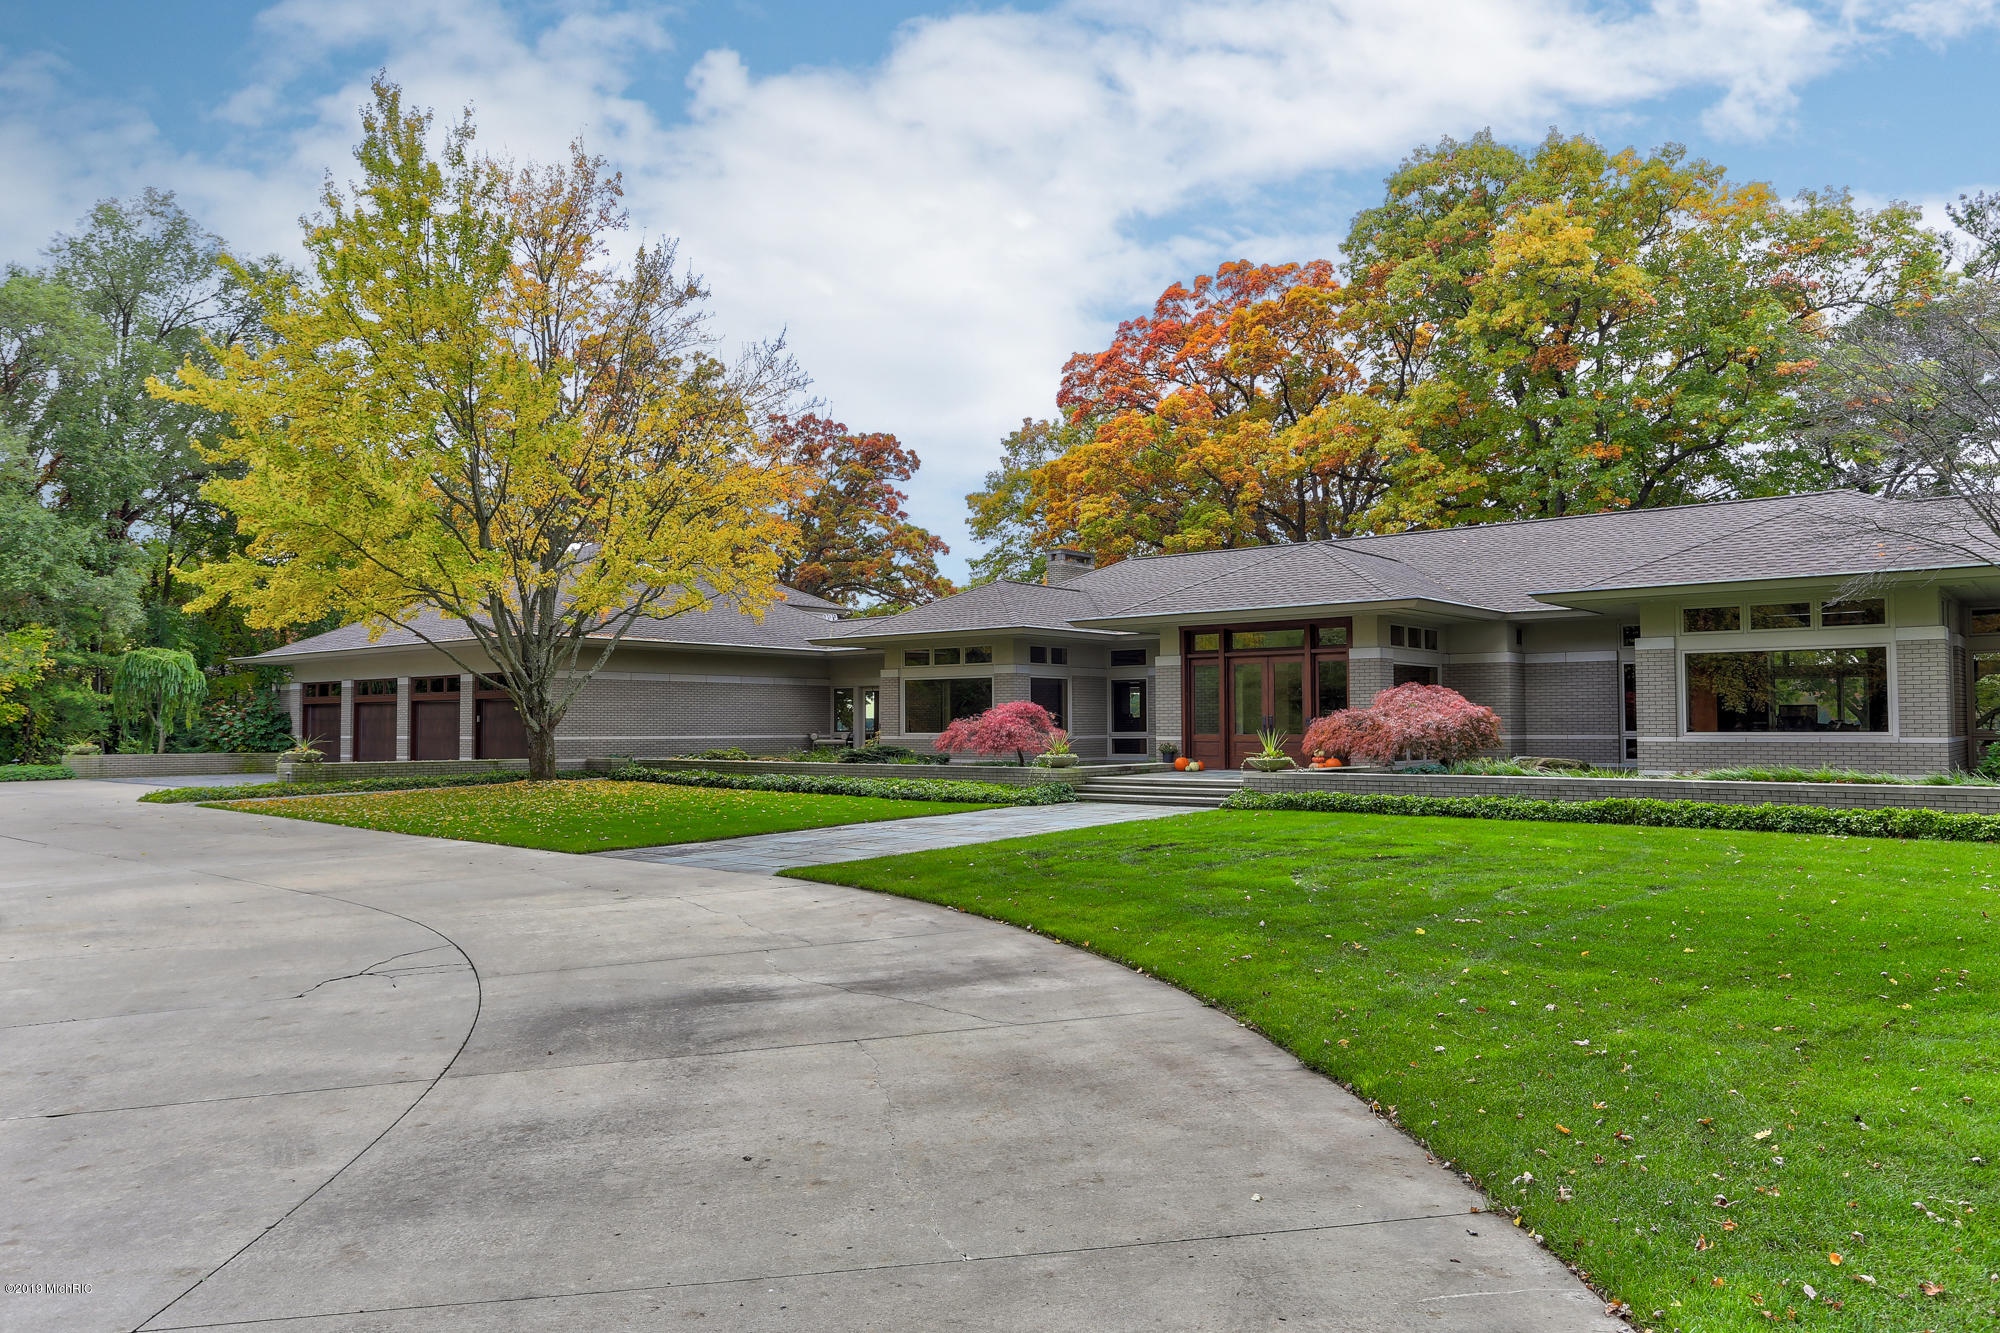 17971 N Fruitport Road, Spring Lake, MI 49456